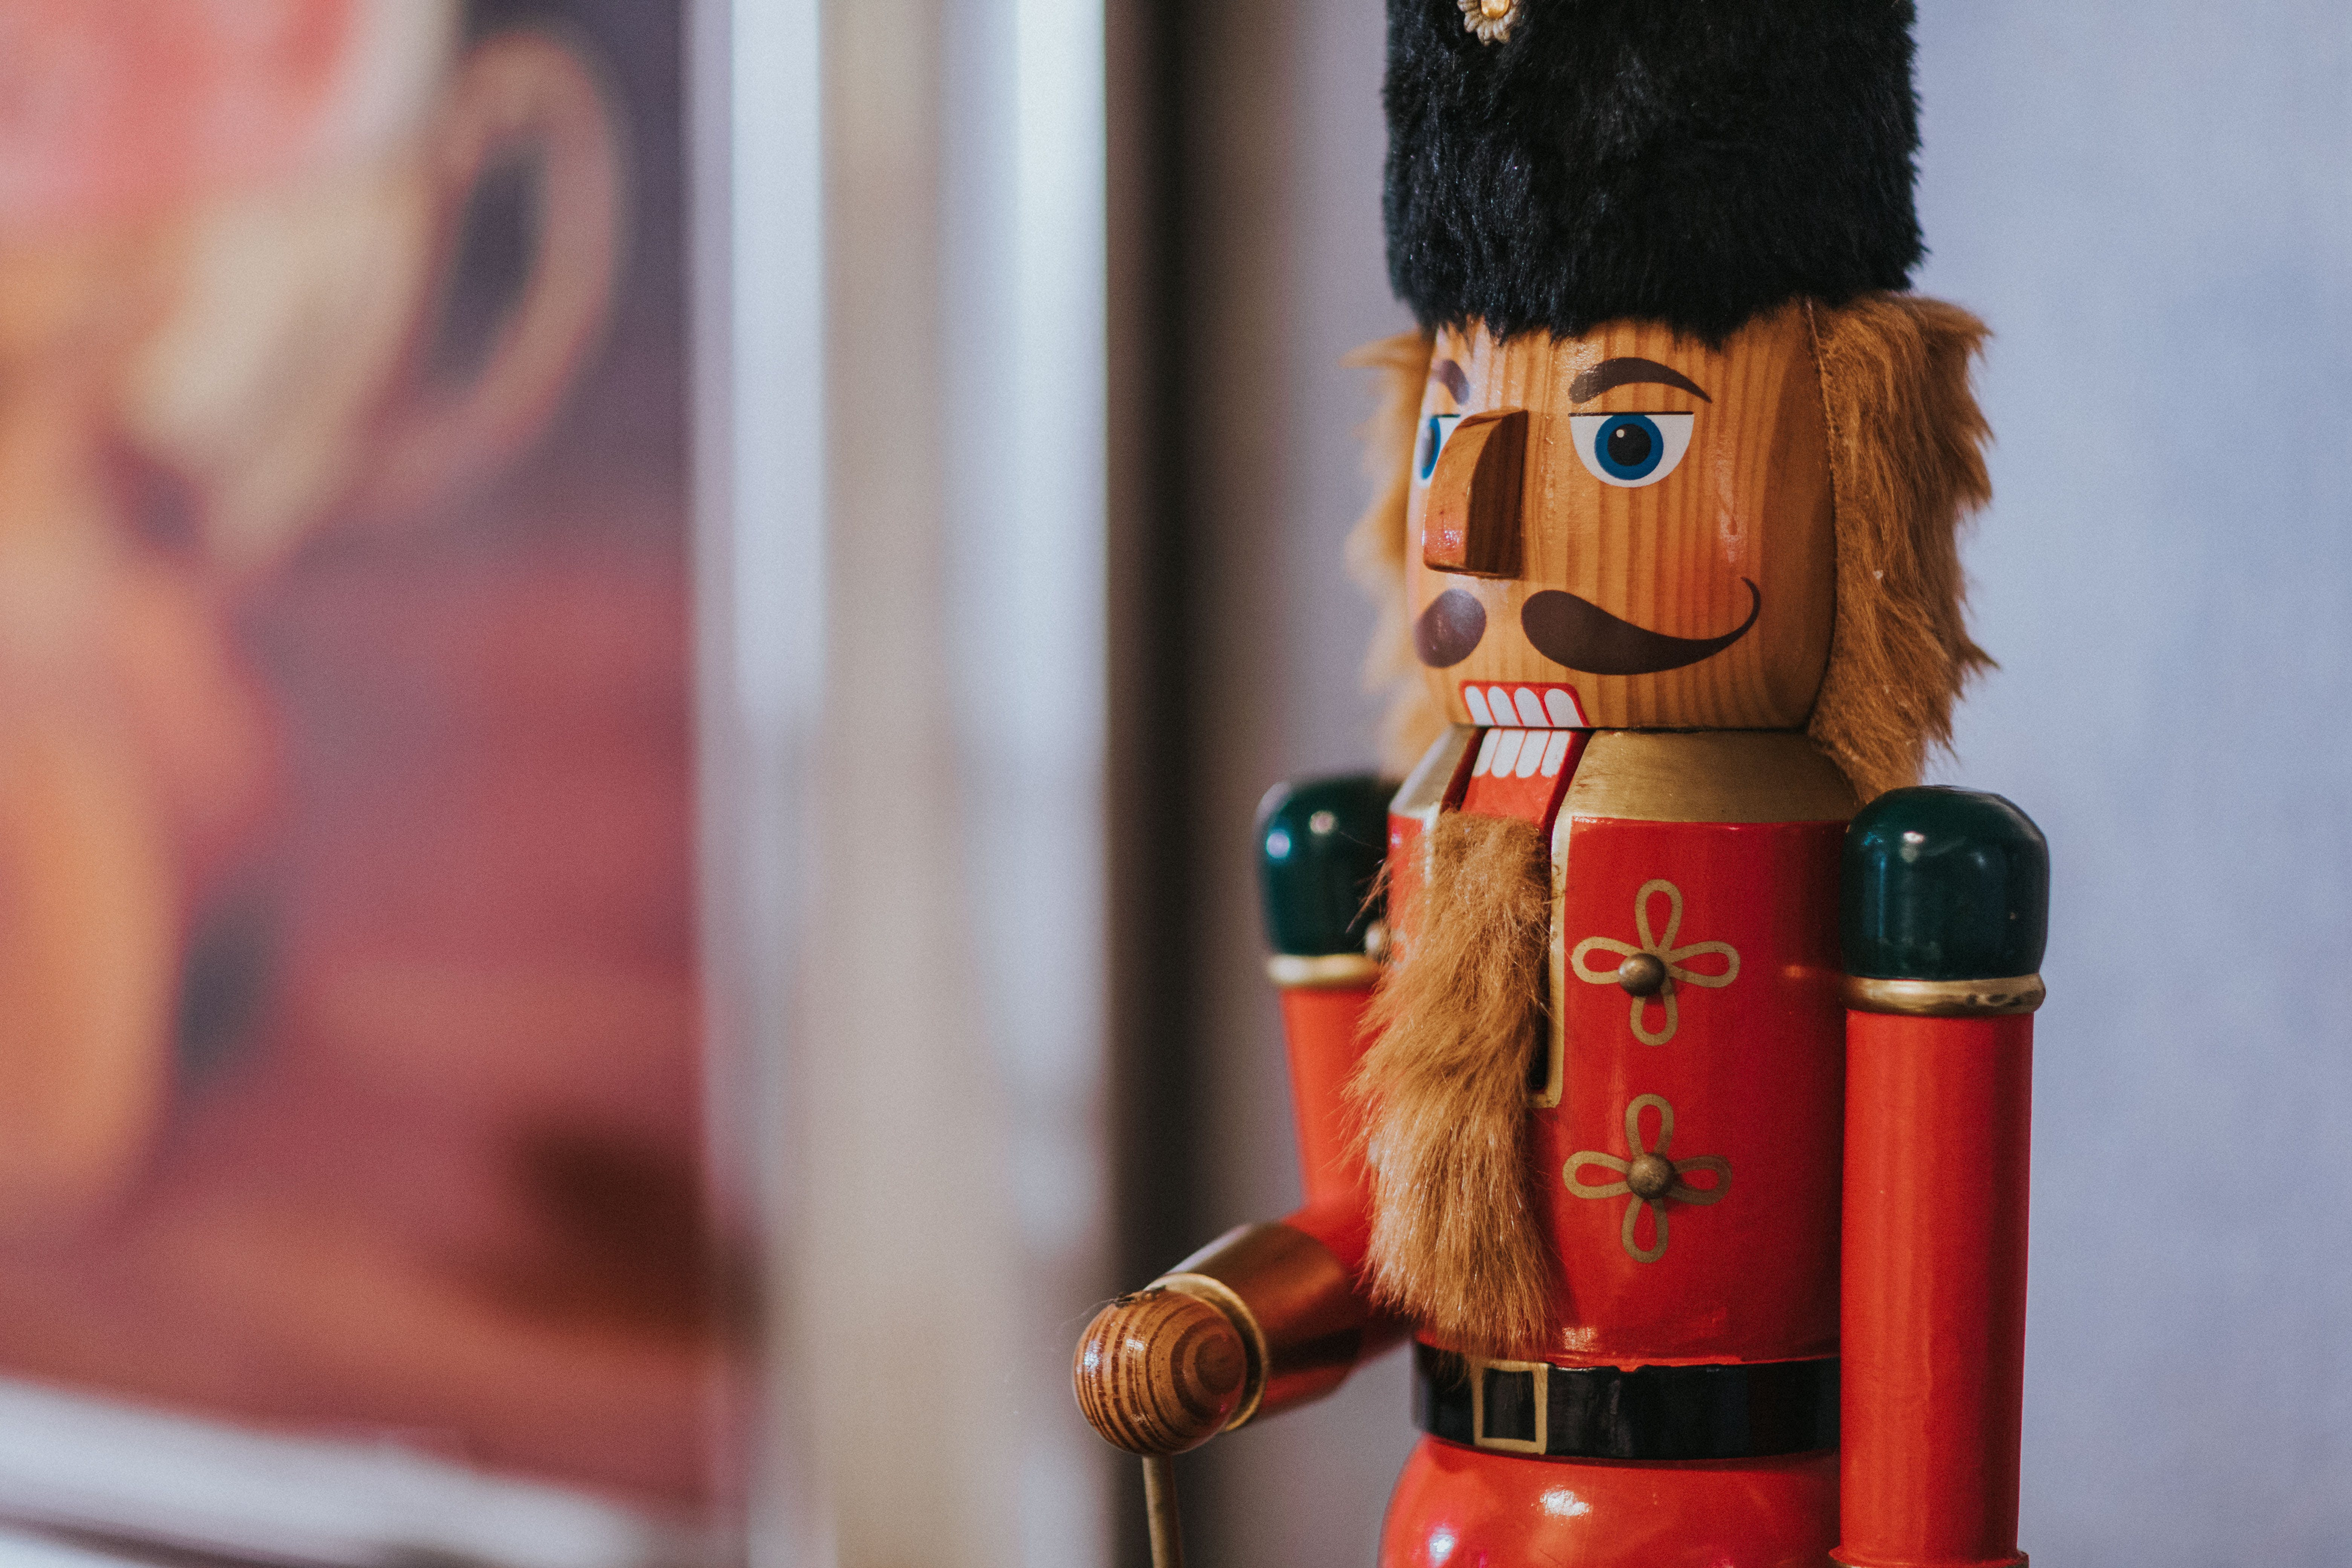 Shallow Focus Photography of Wooden Nutcracker